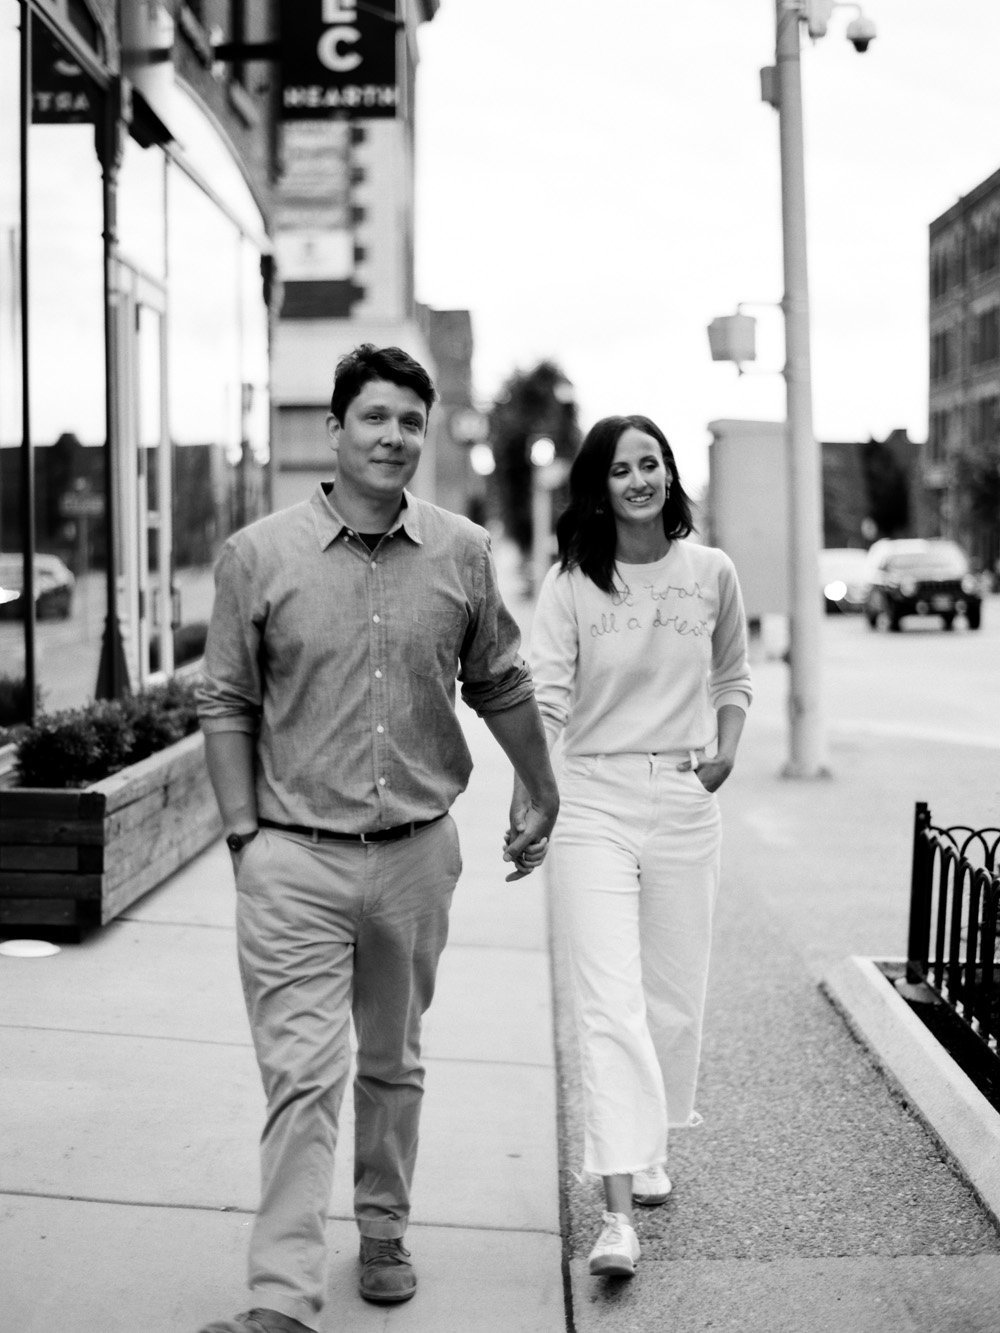 mary-dougherty-engaged-new-york-wedding-photographer-buffalo02